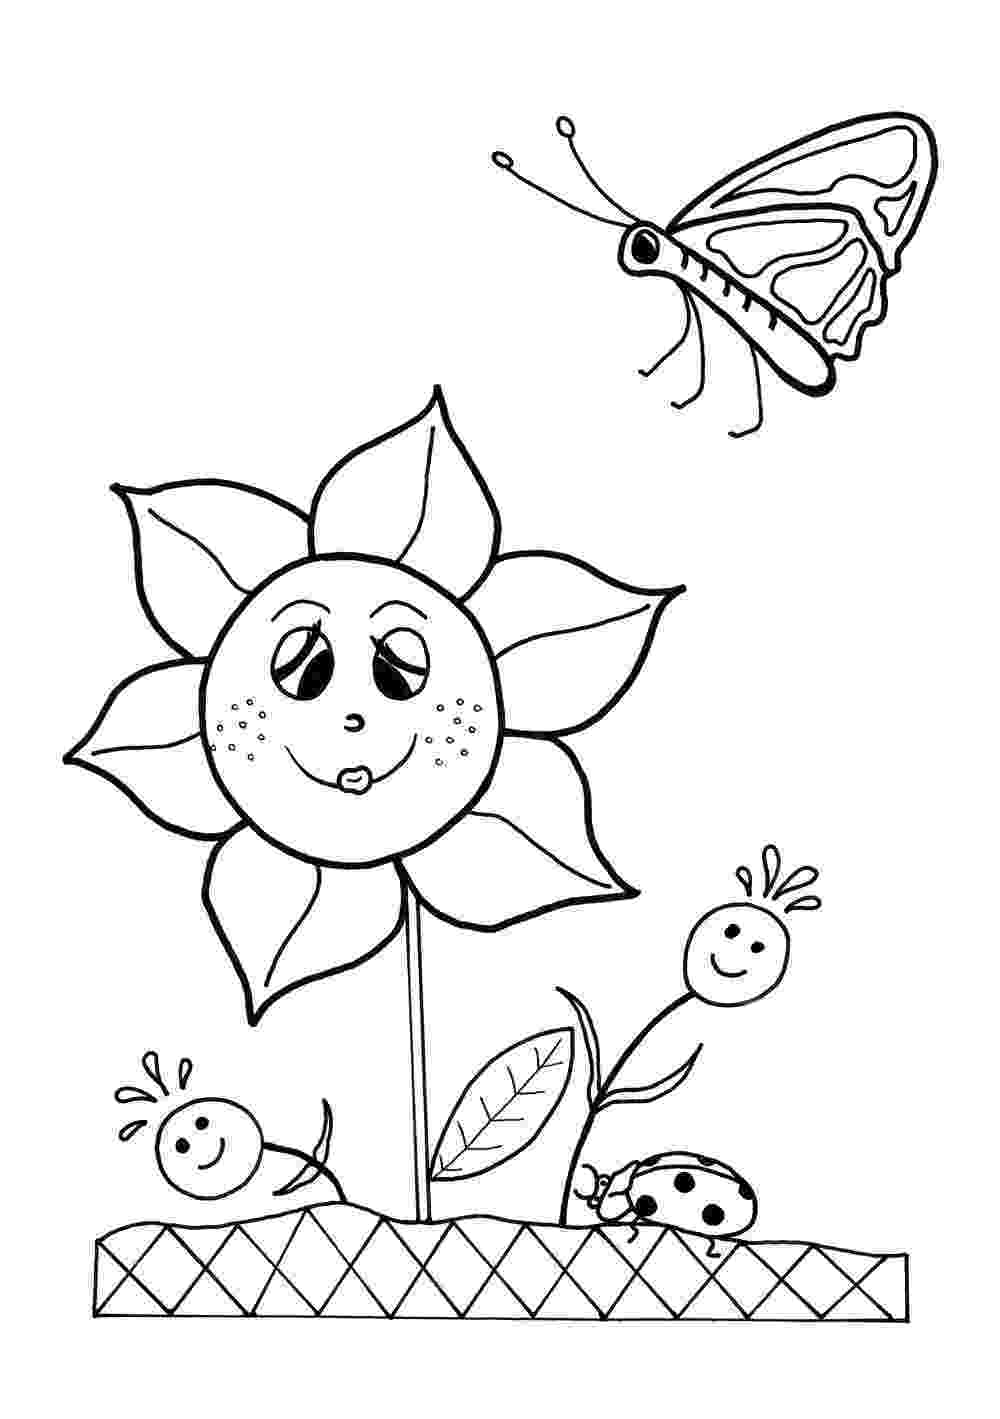 coloring pages of spring flowers dancing flowers spring coloring sheet allfreekidscraftscom of pages coloring spring flowers